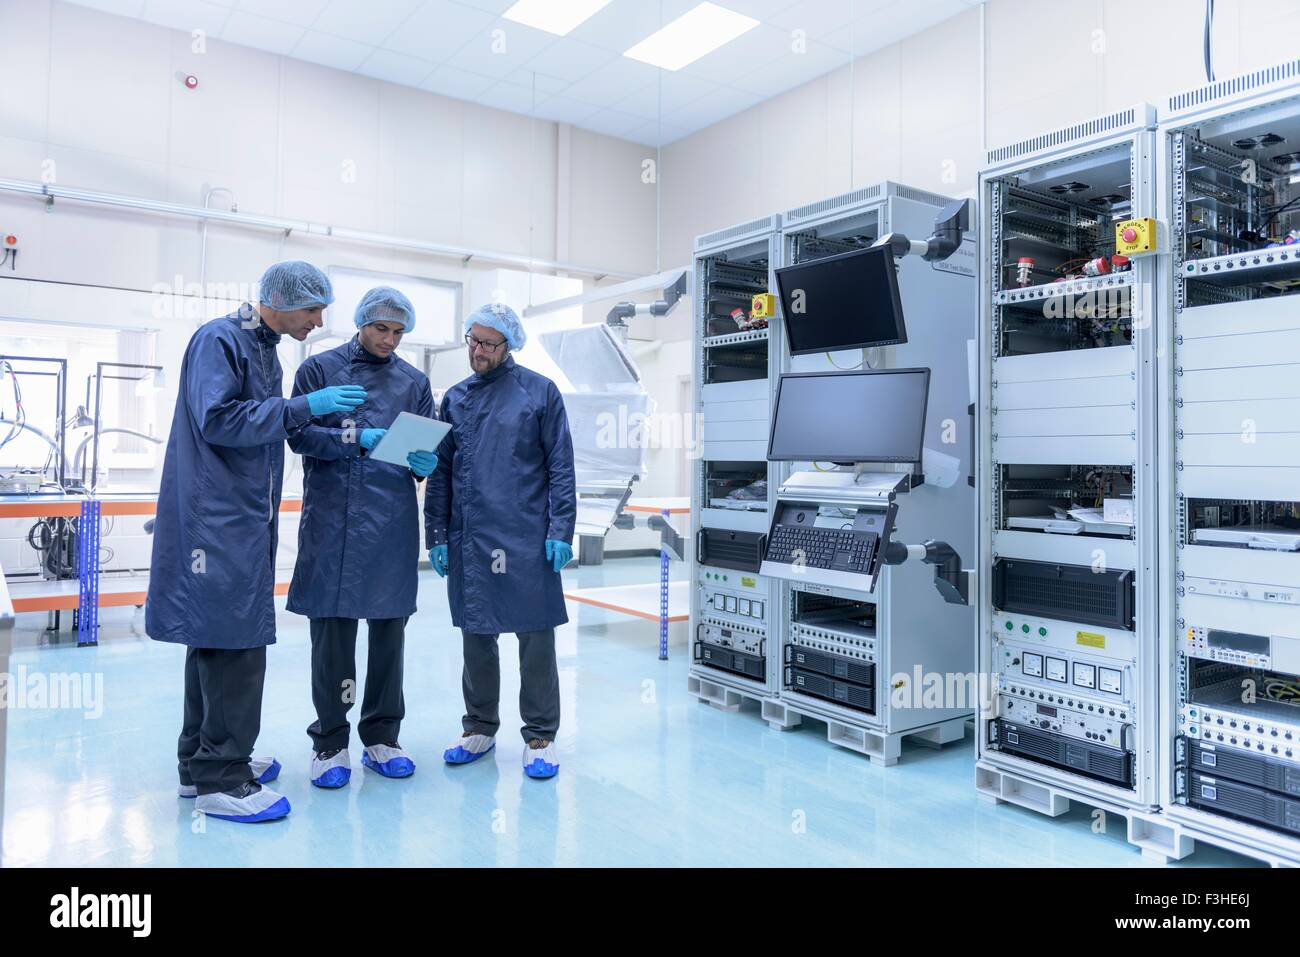 Workers in clean room in electronics factory - Stock Image